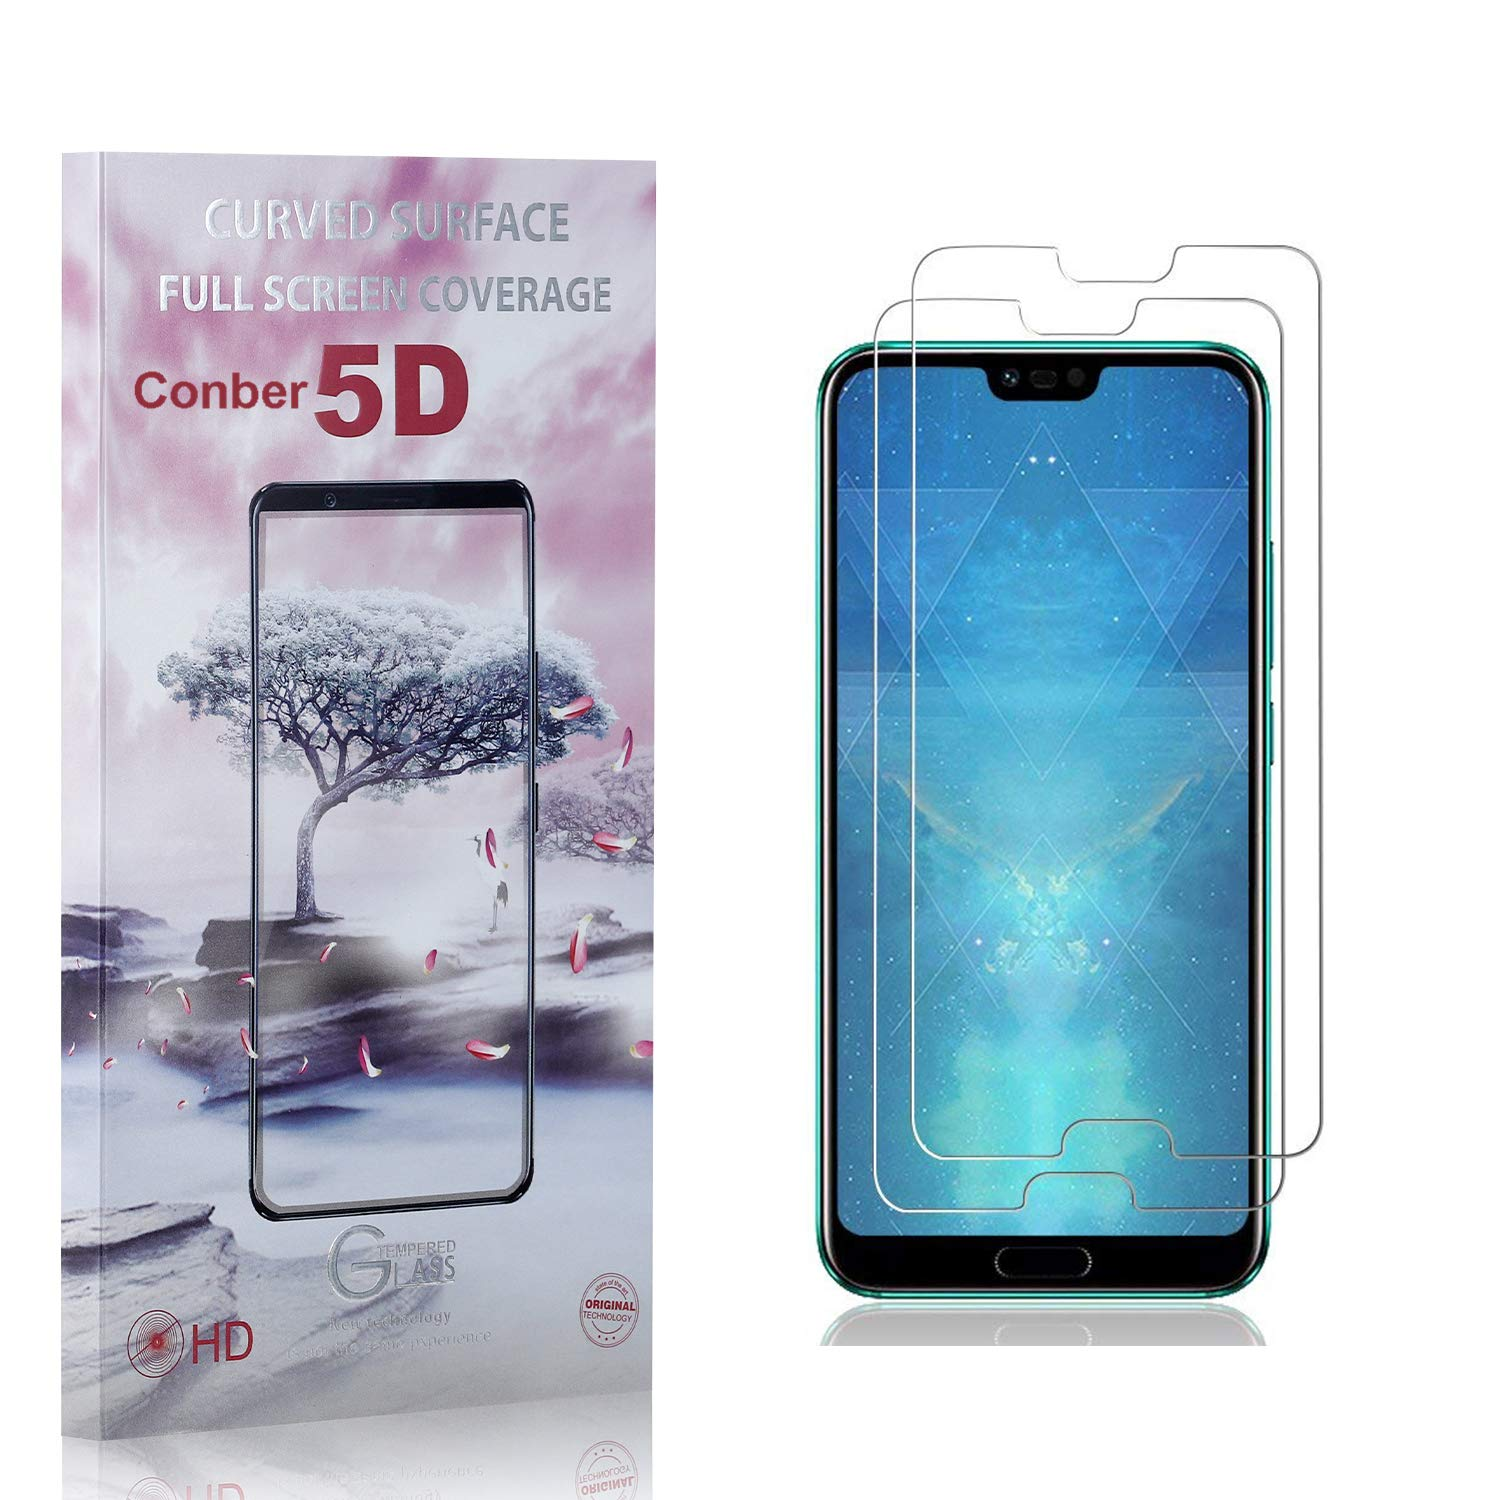 shipfree 35% OFF Conber 2 Pack Screen Protector Anti-Shat for 10 Huawei Honor